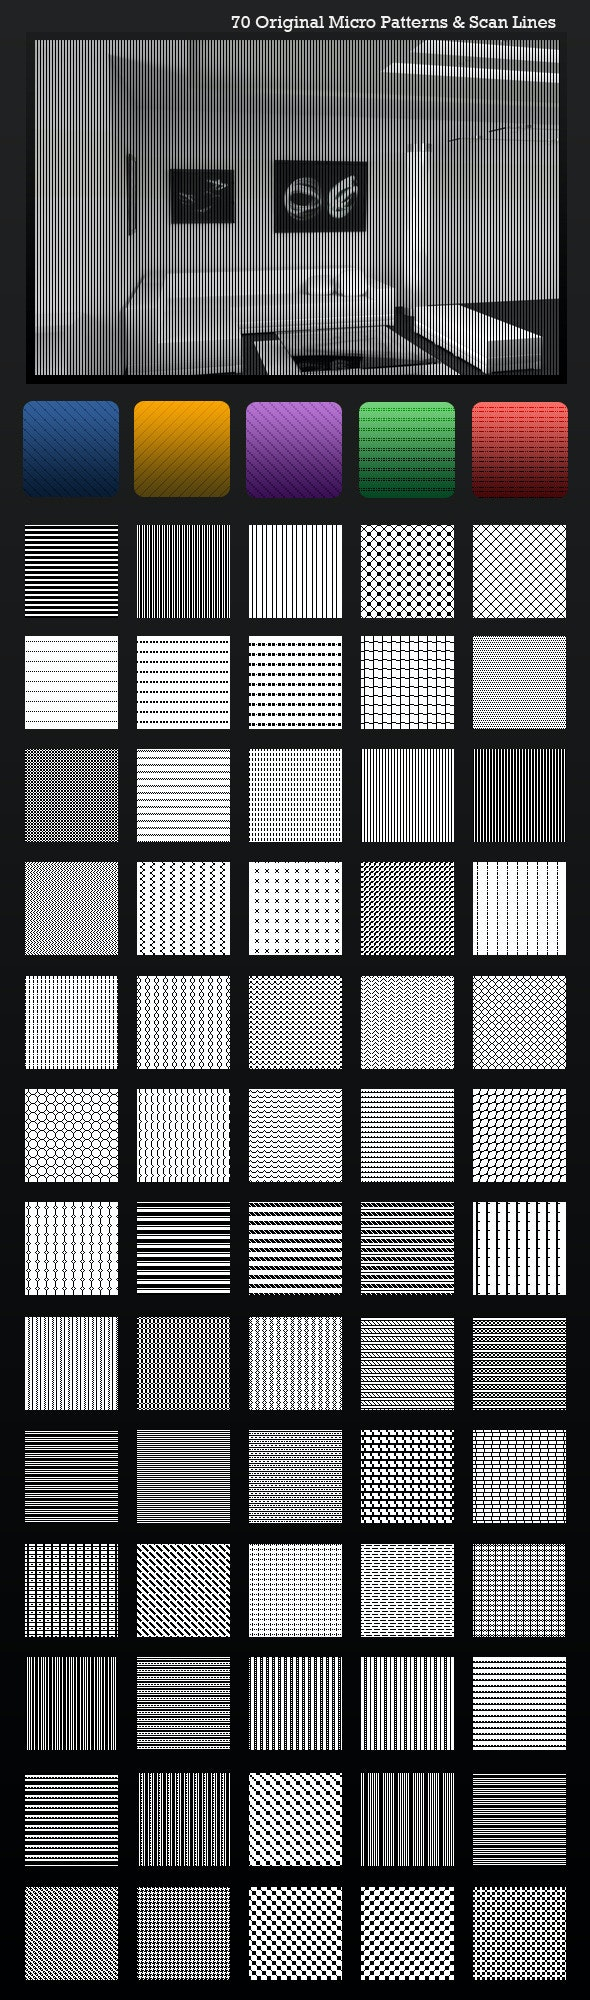 Ultimate ScanLines & Micro Patterns - 70 Pack - Textures / Fills / Patterns Photoshop